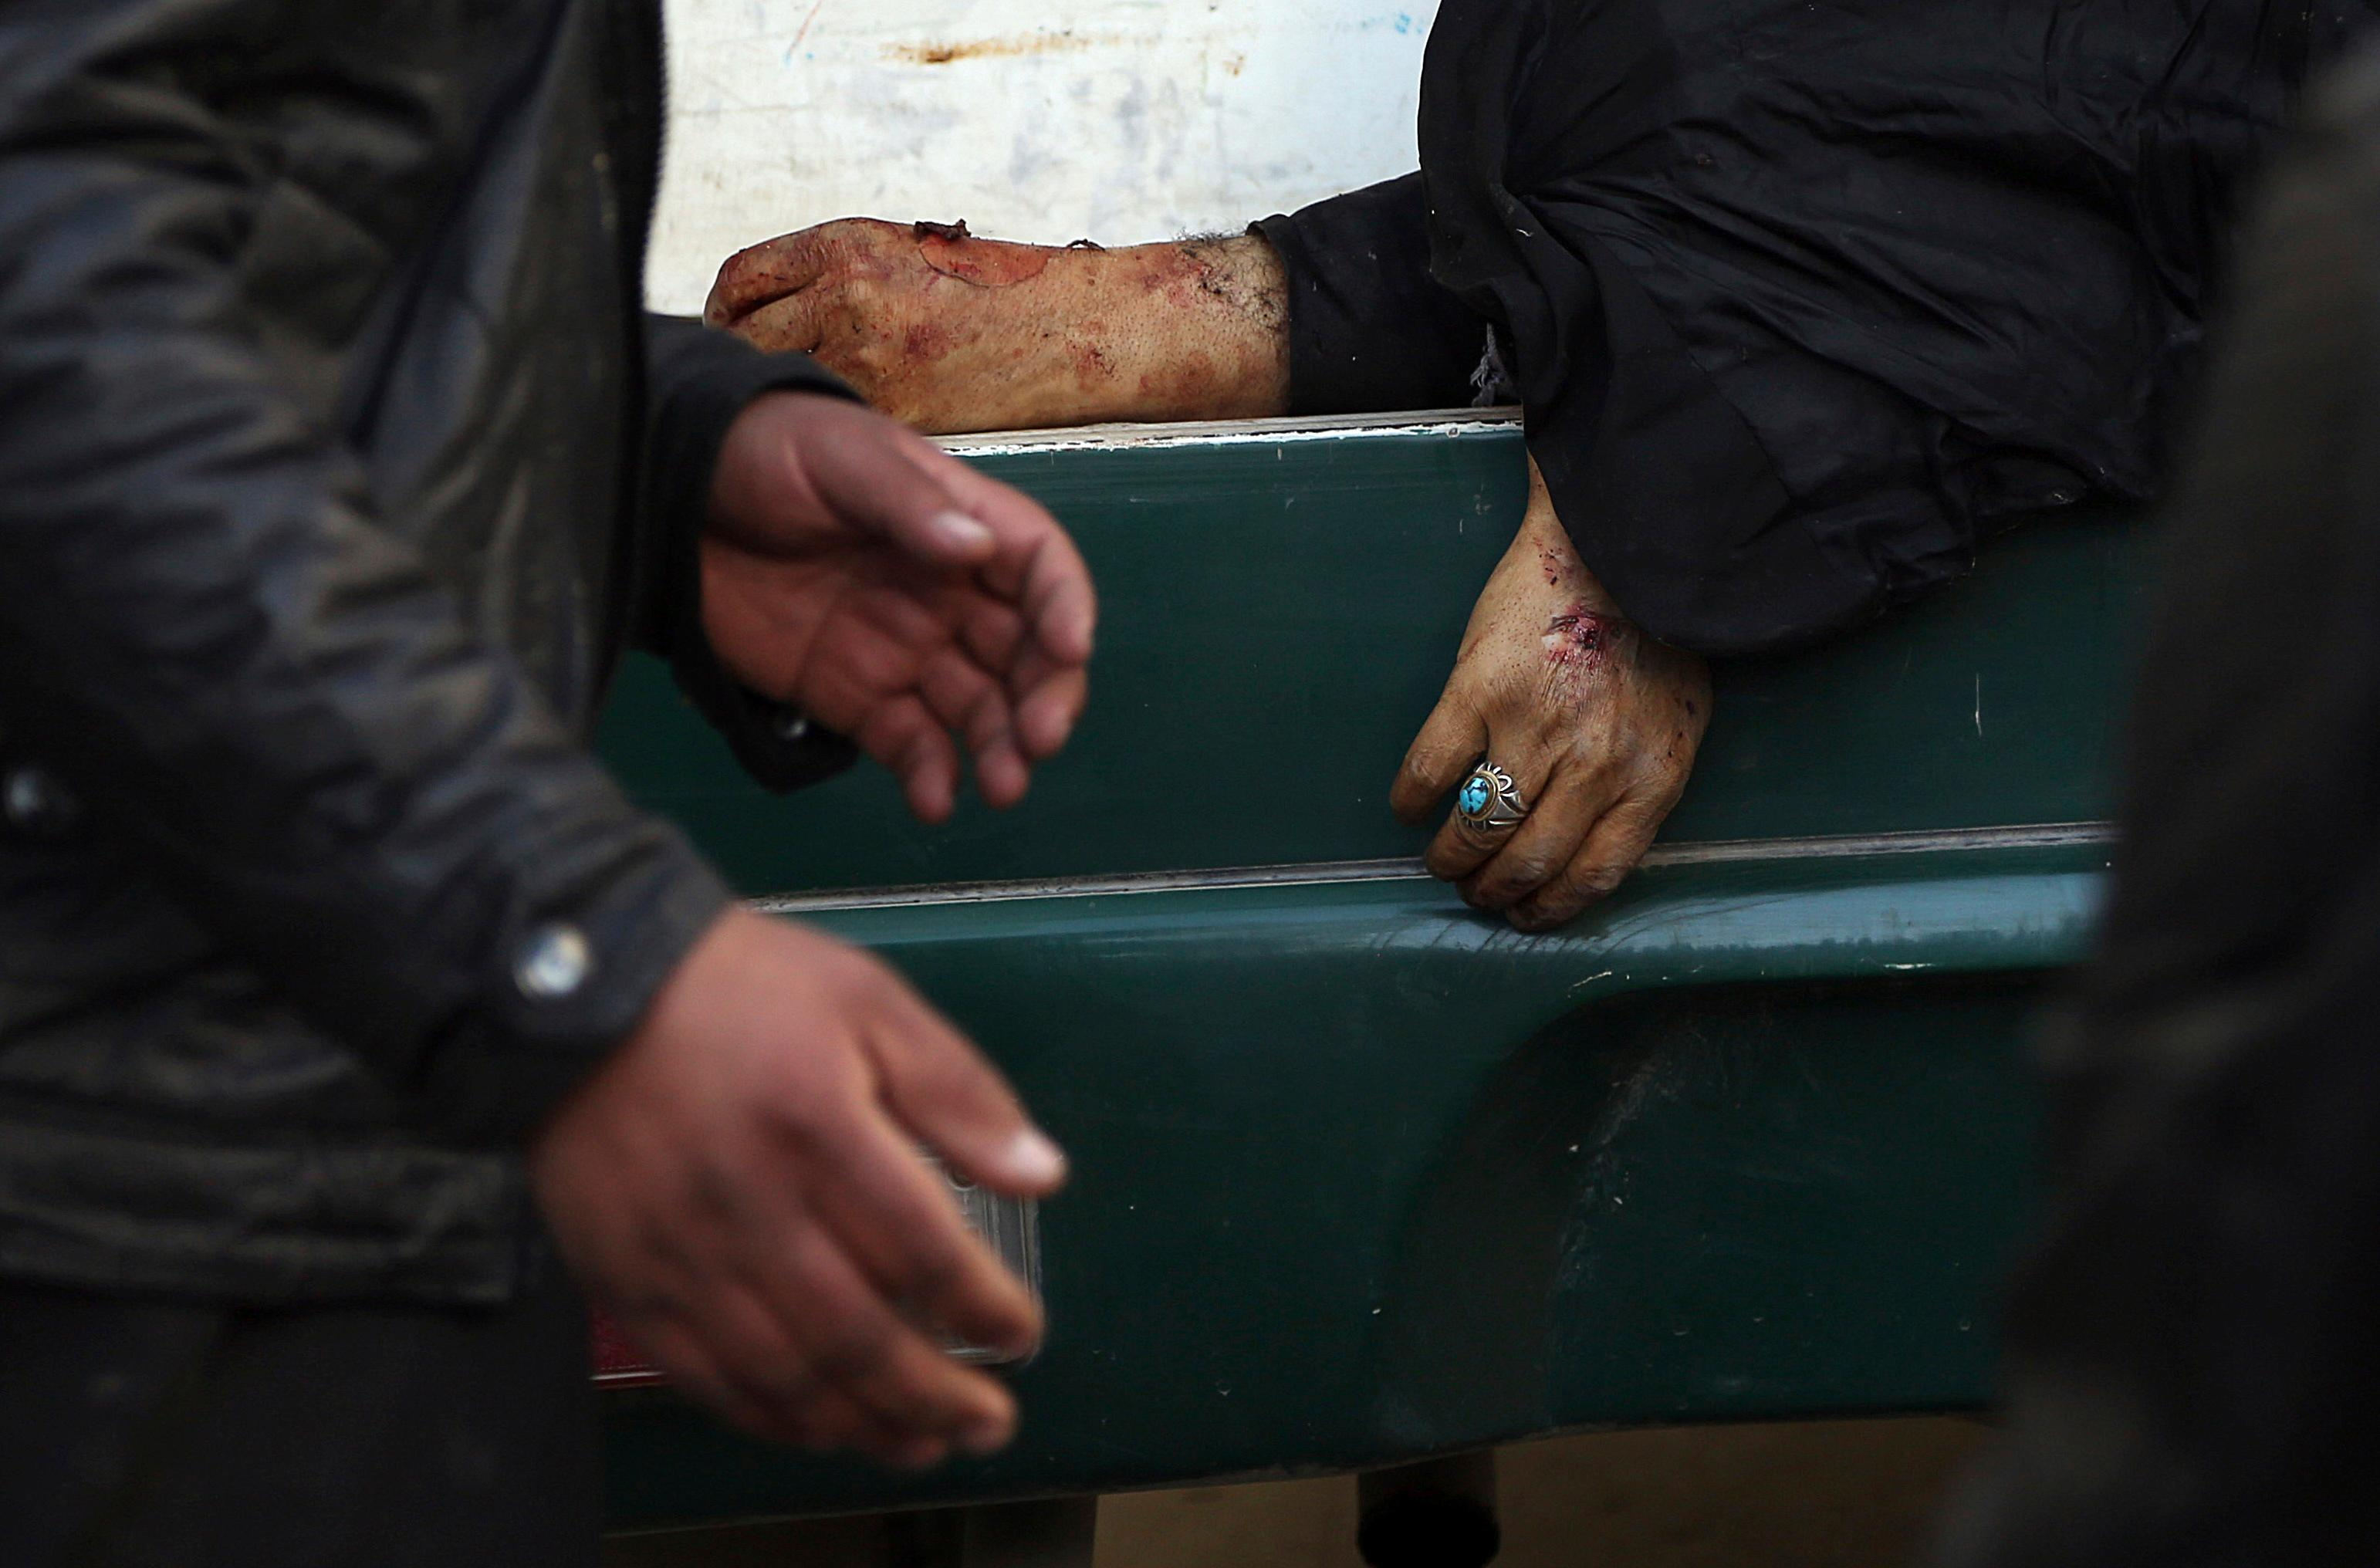 A man passes the hand of a deceased woman on a stretcher in a hospital following a suicide attack in Kabul, Afghanistan, Thursday, Dec. 28, 2017. Authorities say two simultaneous attacks in Afghanistan's capital have left dozens dead. (AP Photo/Rahmat Gul)